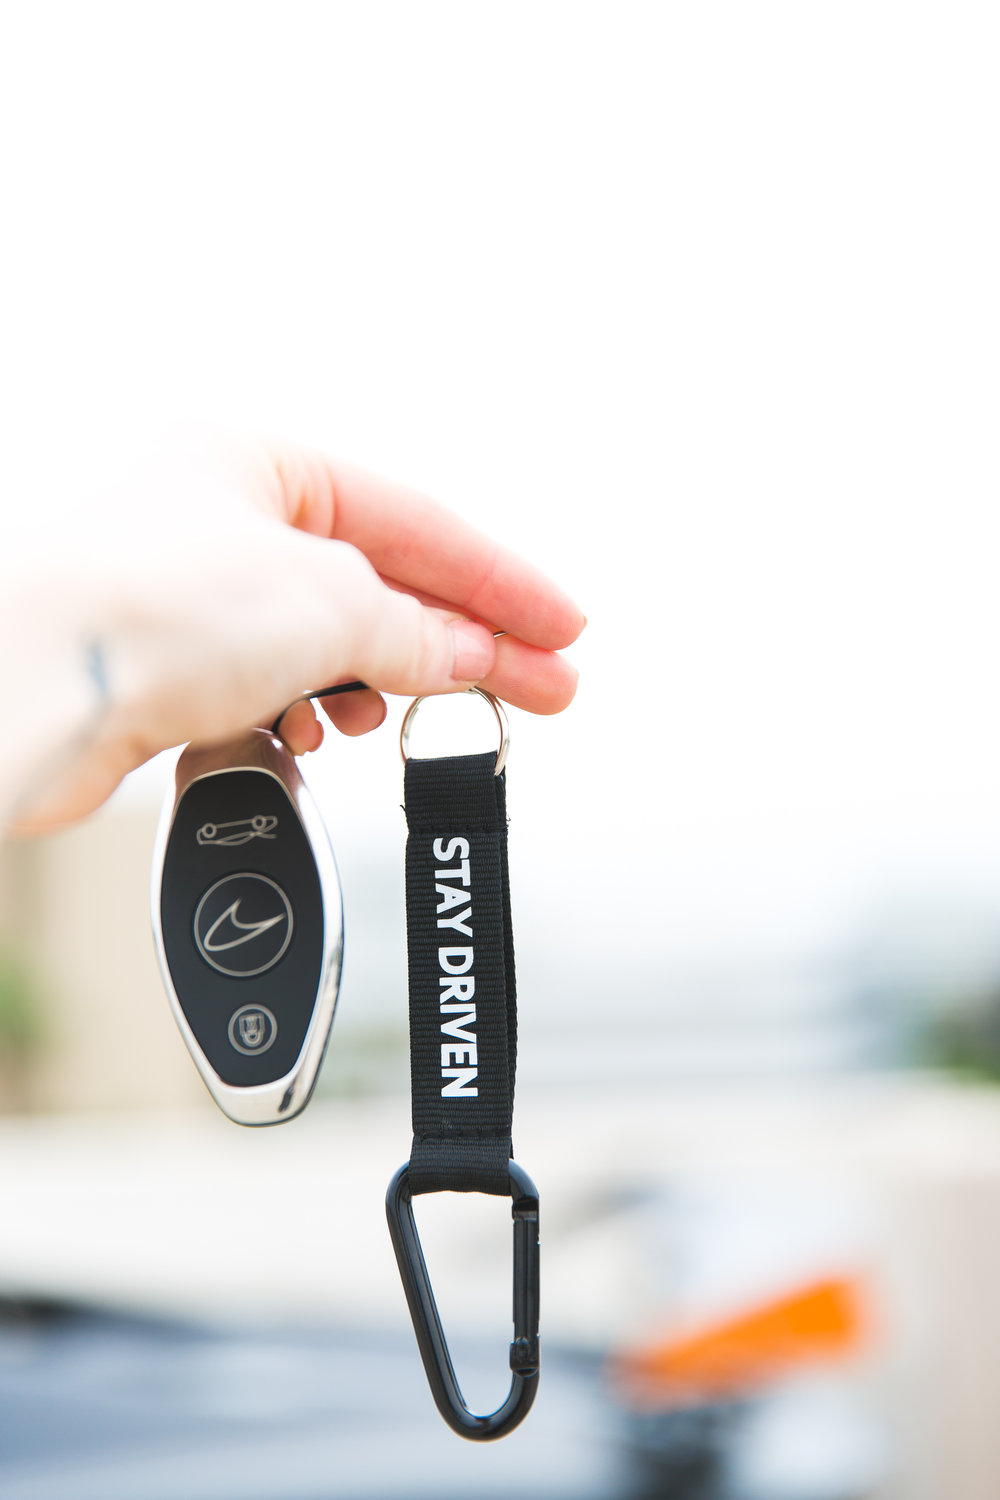 Stay_Driven_MINI_Lanyard_Mclaren-12.jpg